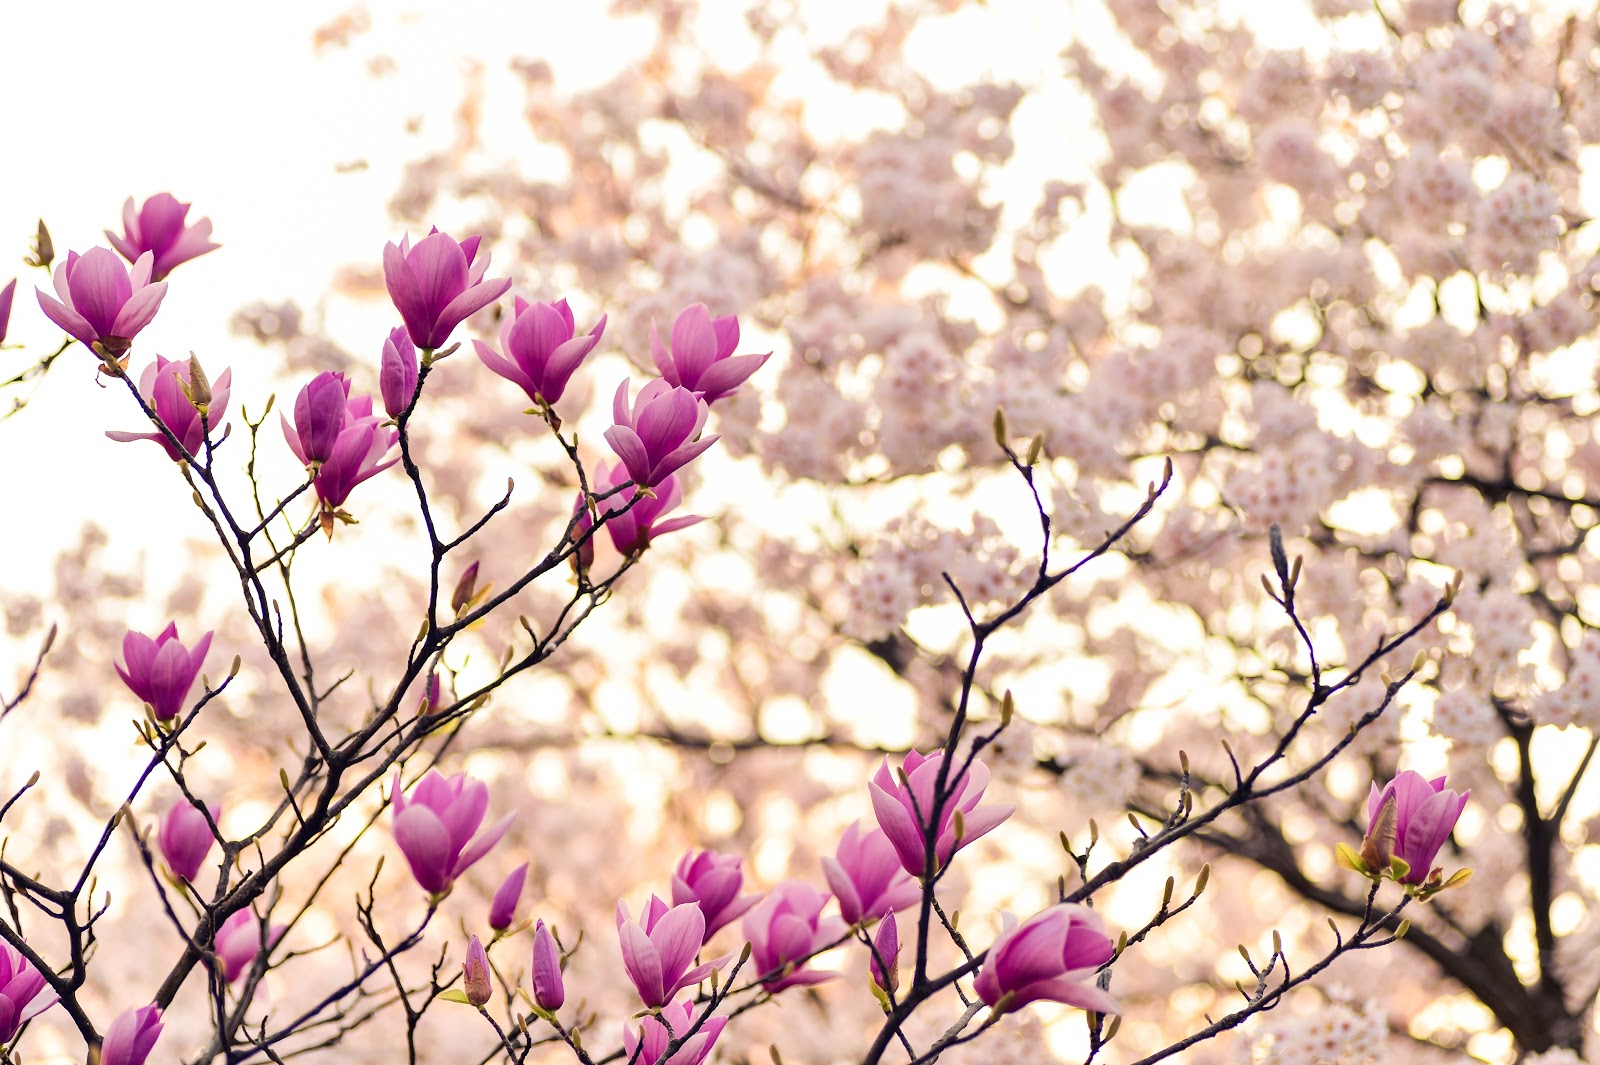 magnolia, flower photo